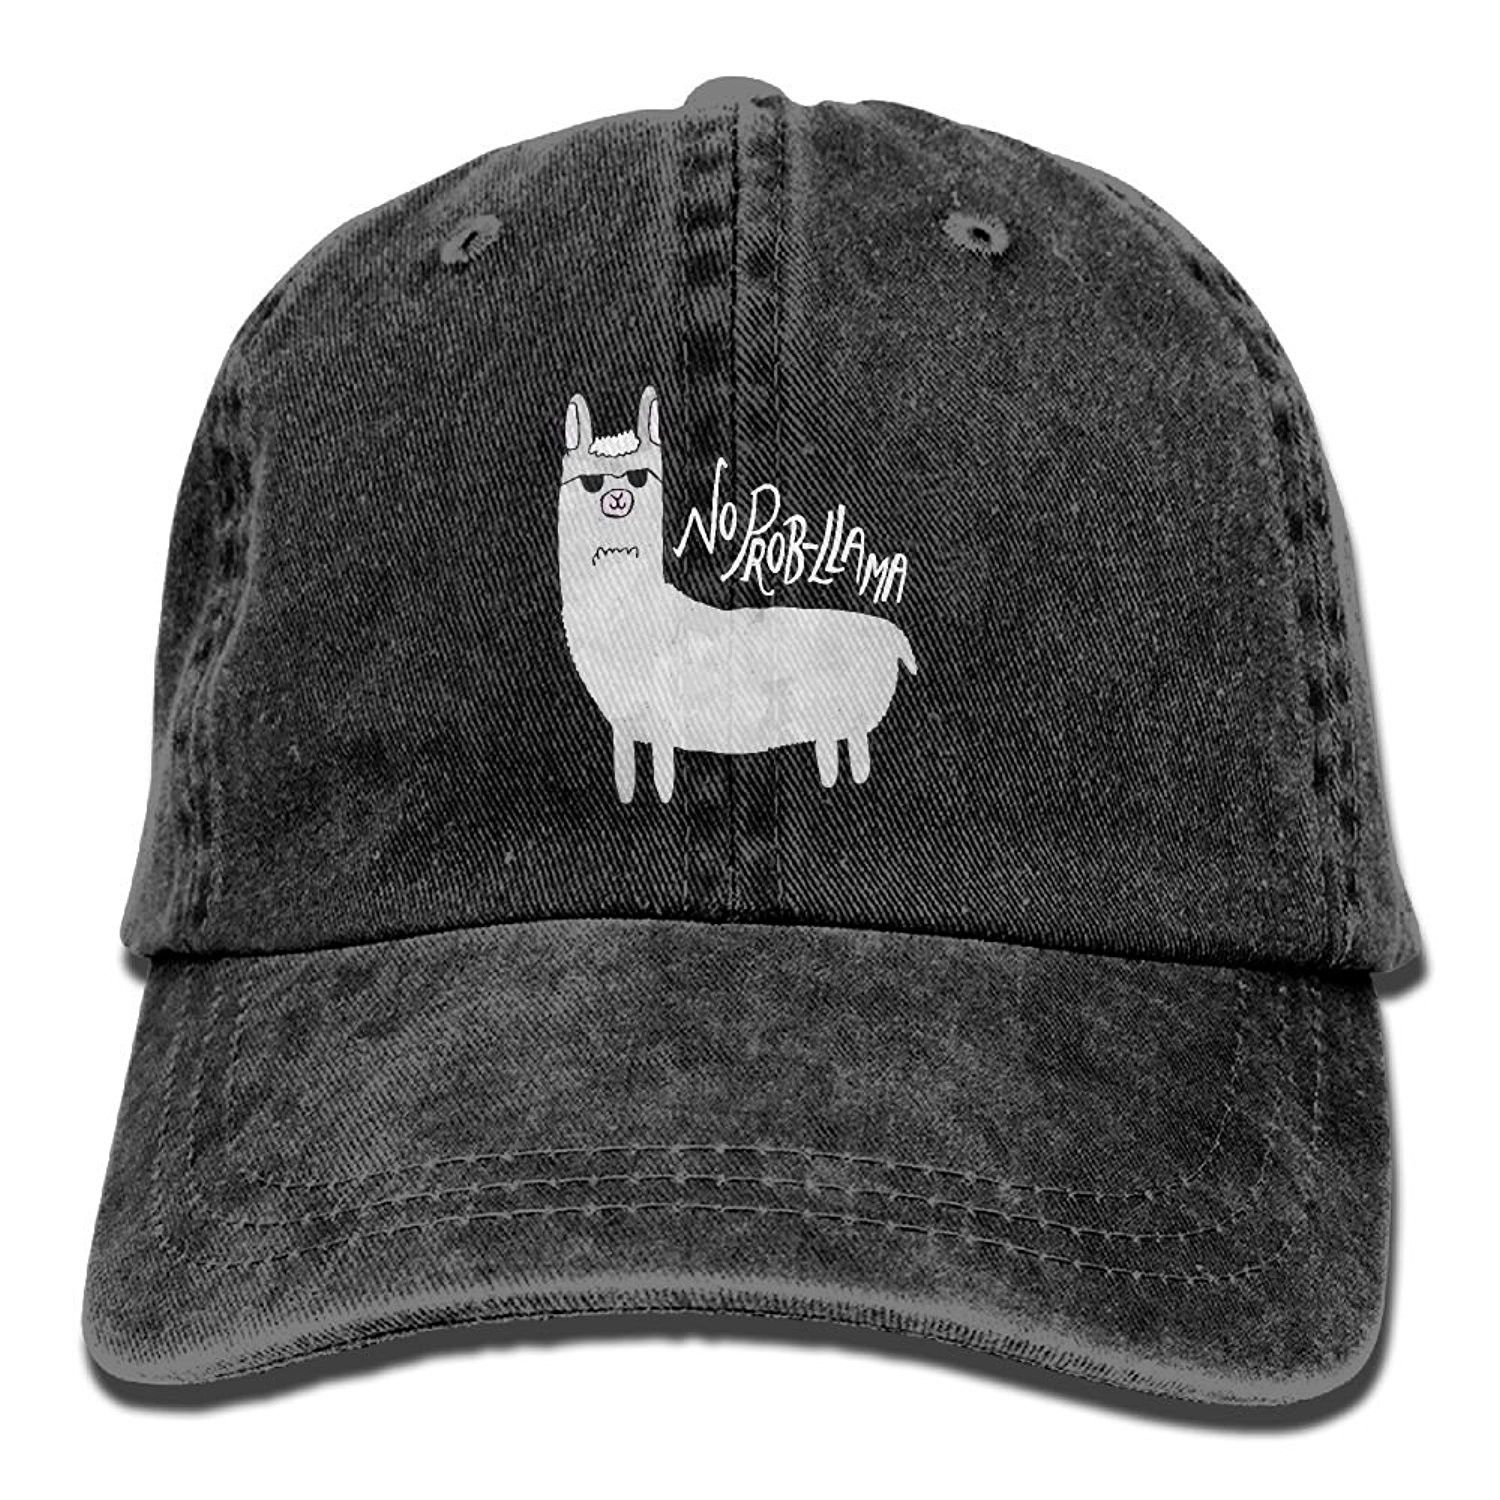 58ed602ac74 No Prob-llama Adjustable Adults Custom Denim Hat For Mens Womens ...